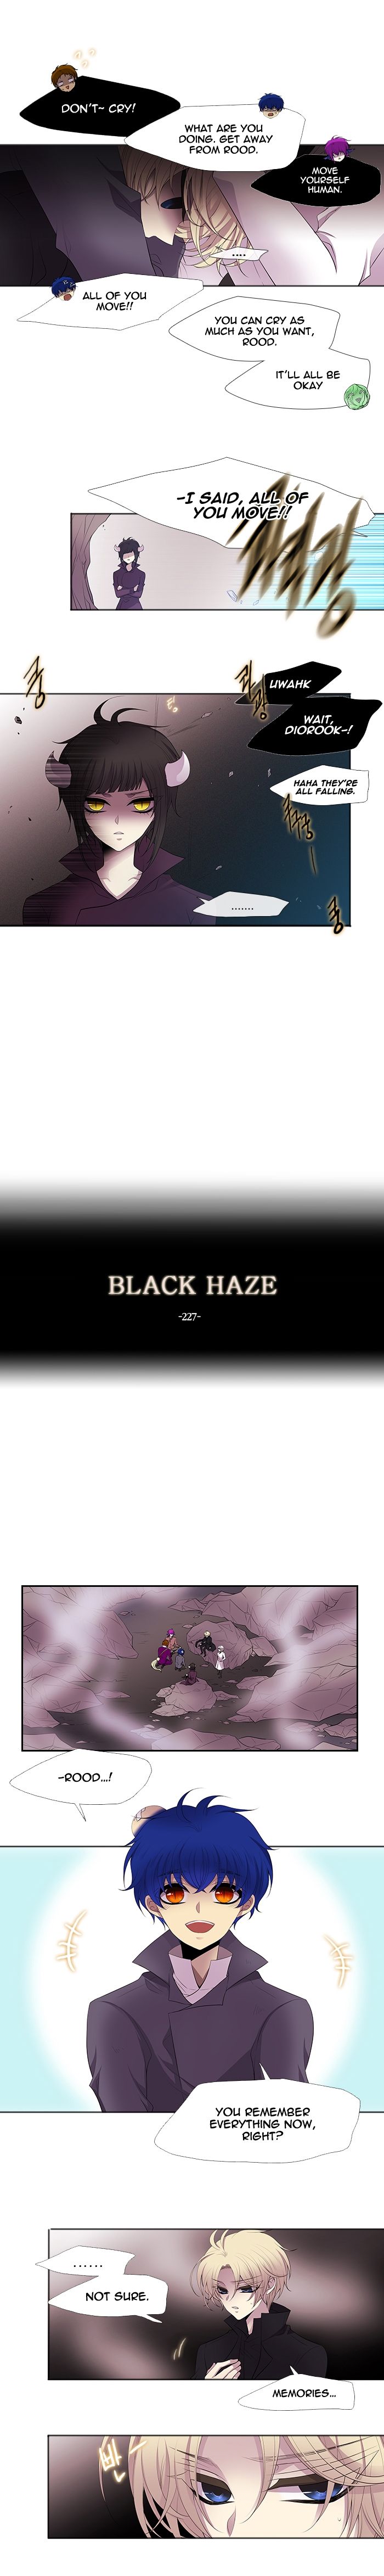 Black Haze - Chapter 229